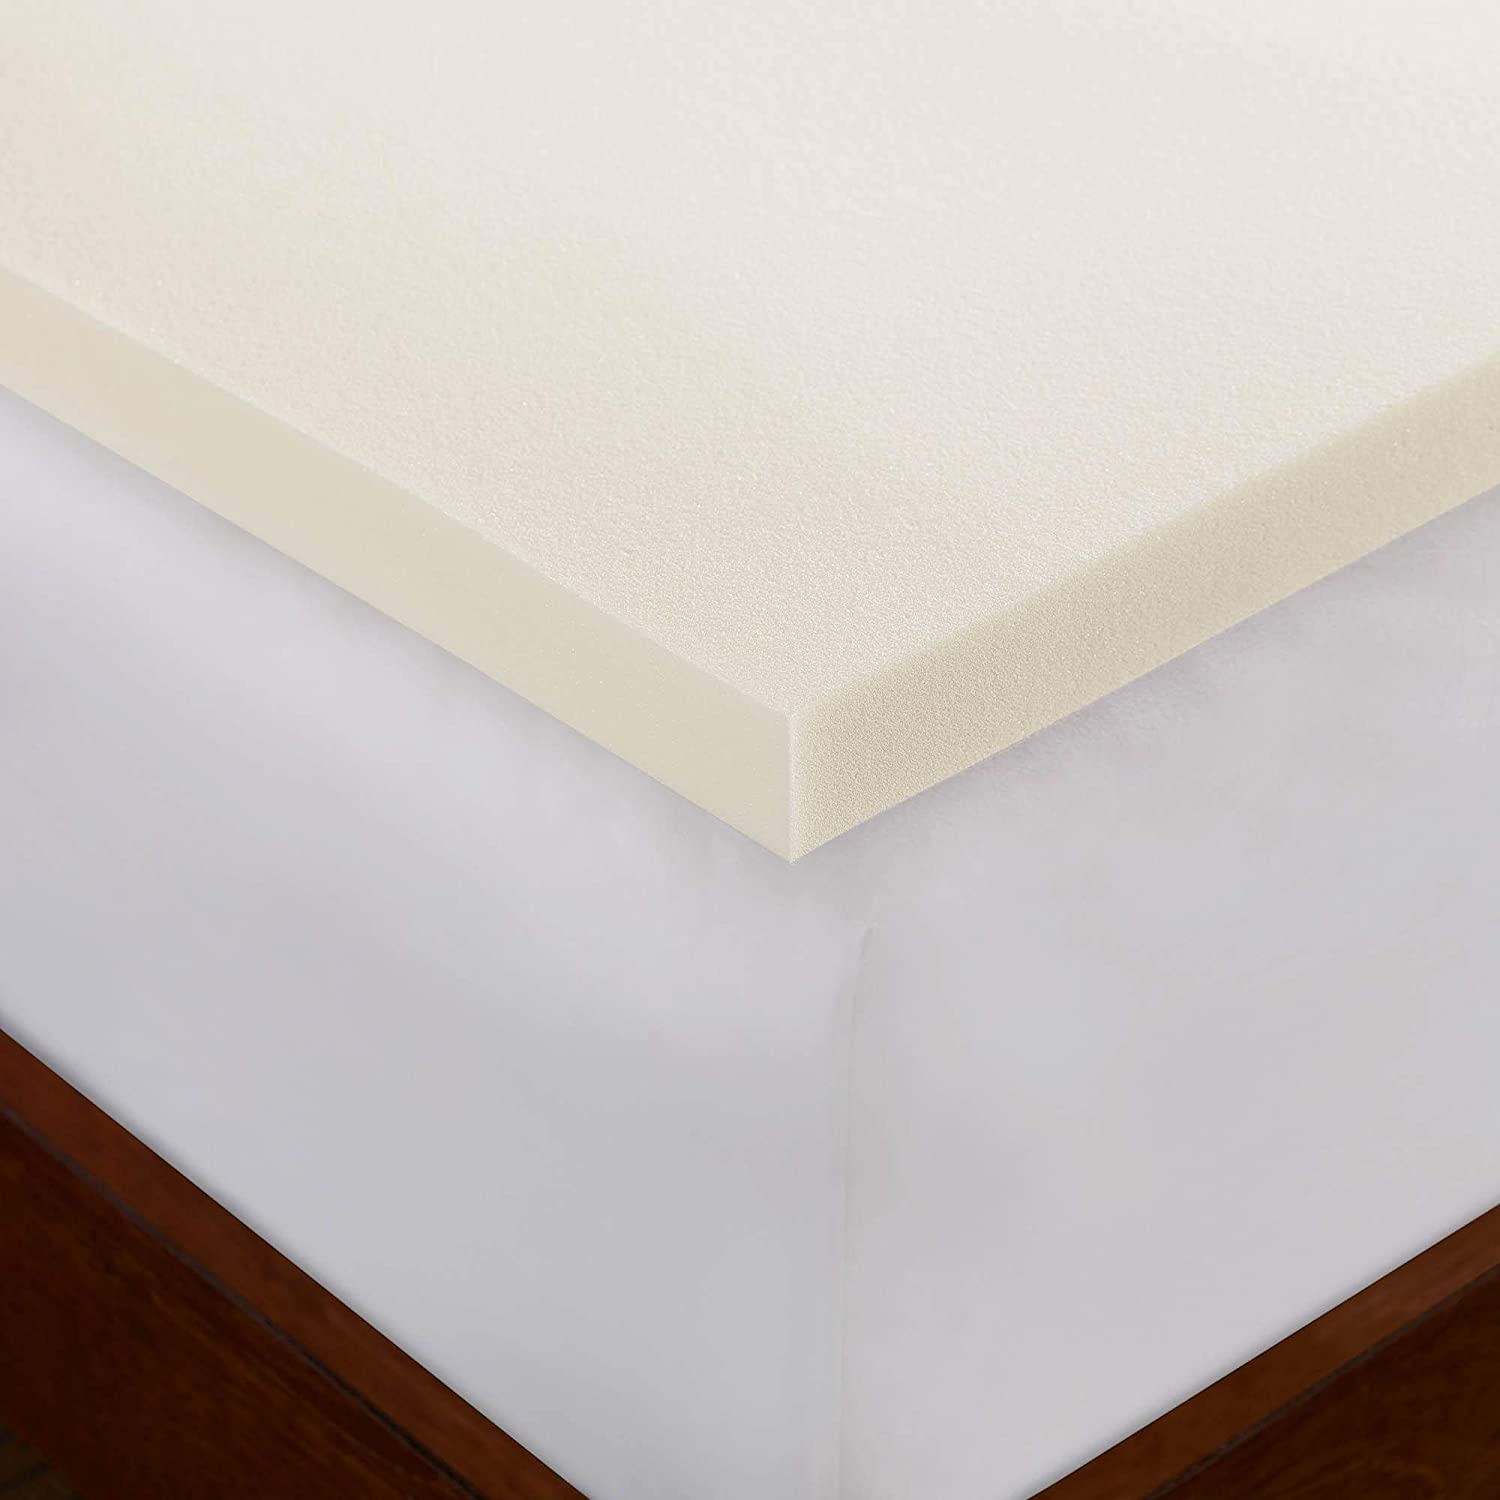 Queen 1.5 Inch iSoCore 2.0 Gel Max 49% OFF Topper Mattress Foam with Max 69% OFF Infused